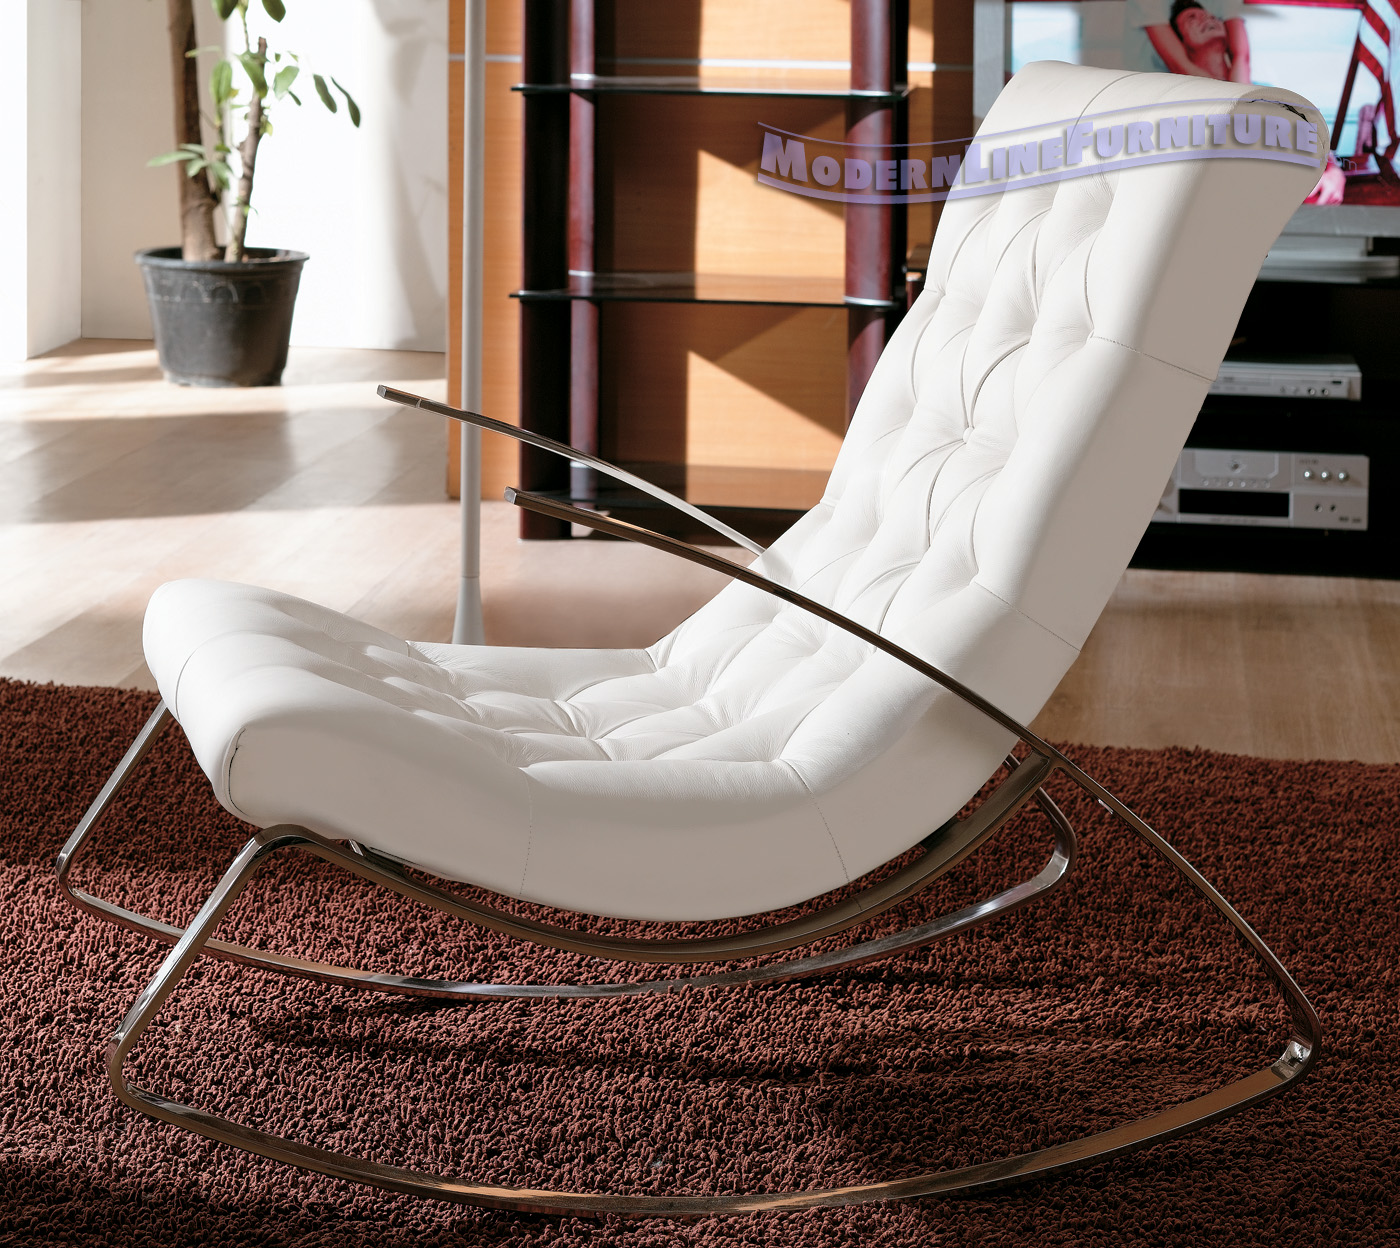 Modern Rocking Chair Design Ideas: Modern Rocking Chair